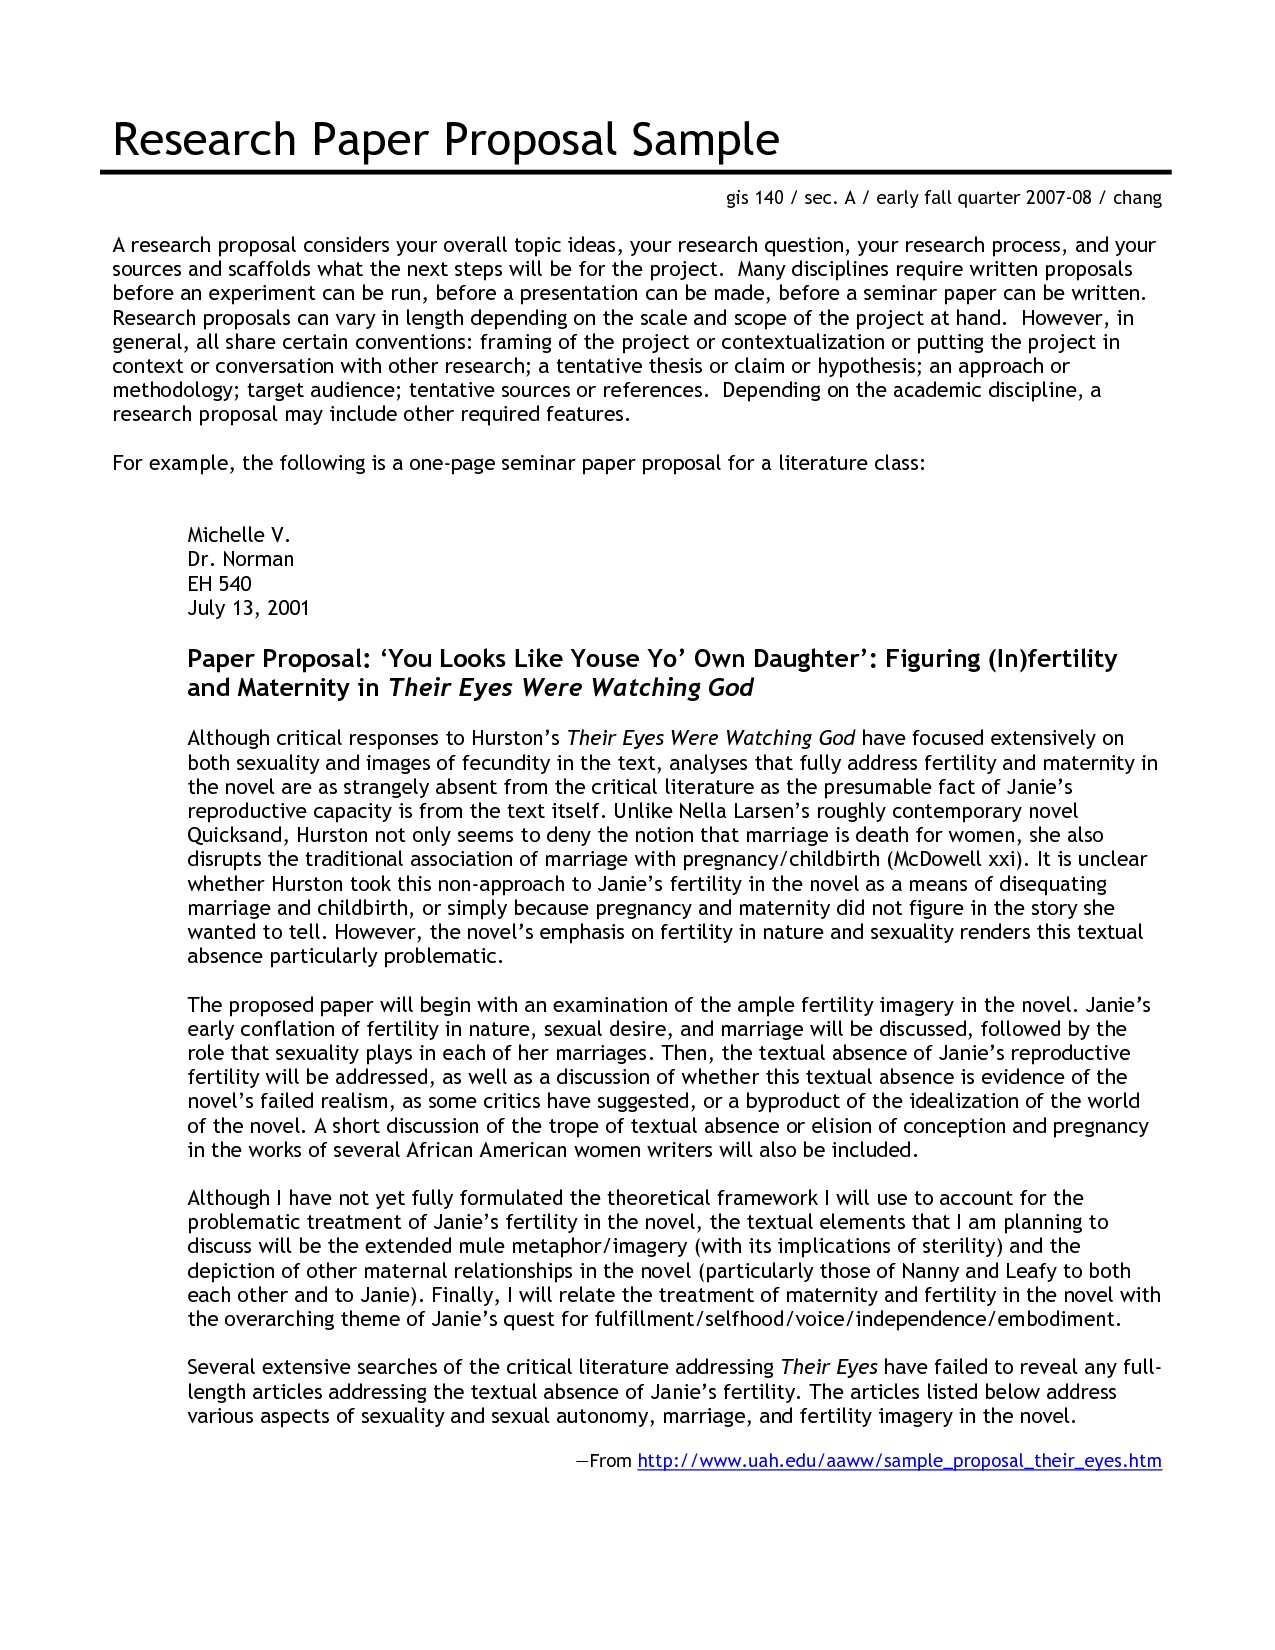 002 Essay Proposal Template Resume Research Examples Zoro Blaszczak Lovely Scientific Example Of Stunning A Paper Full